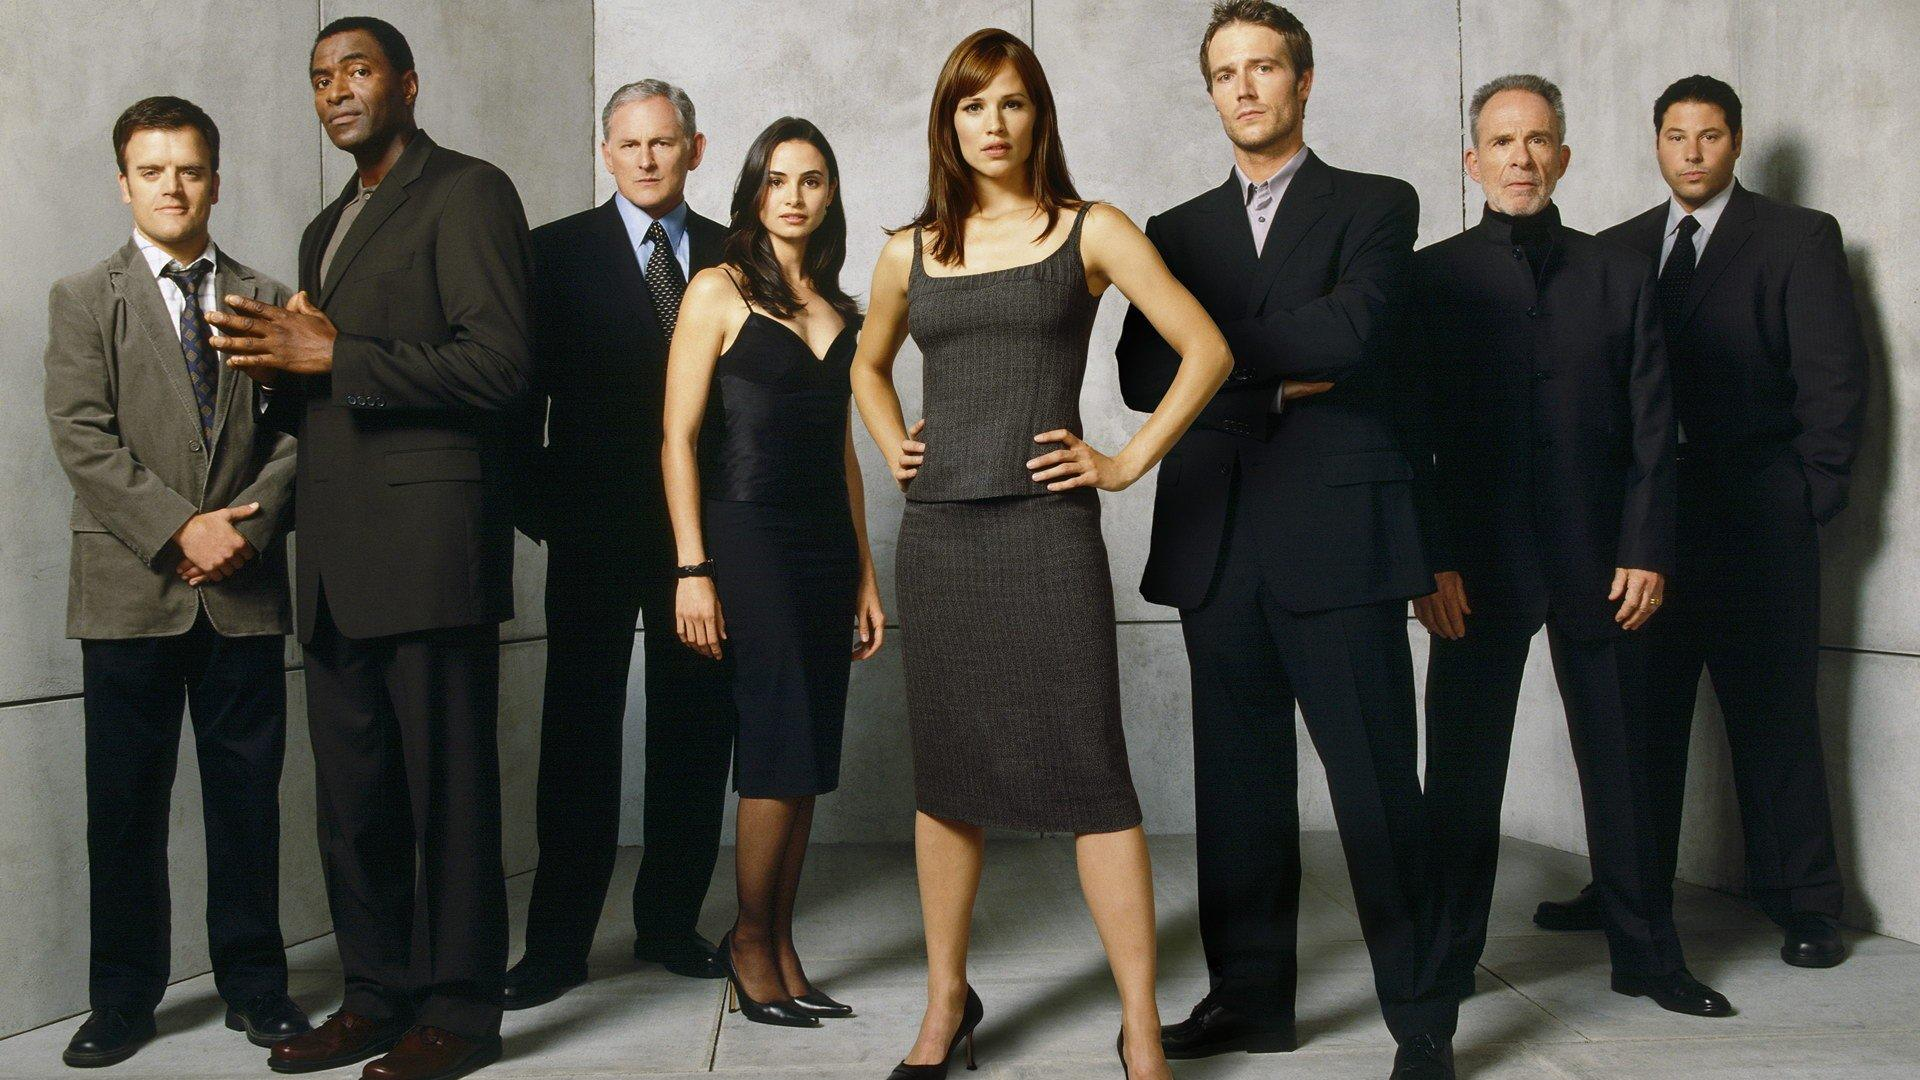 Alias cast photo